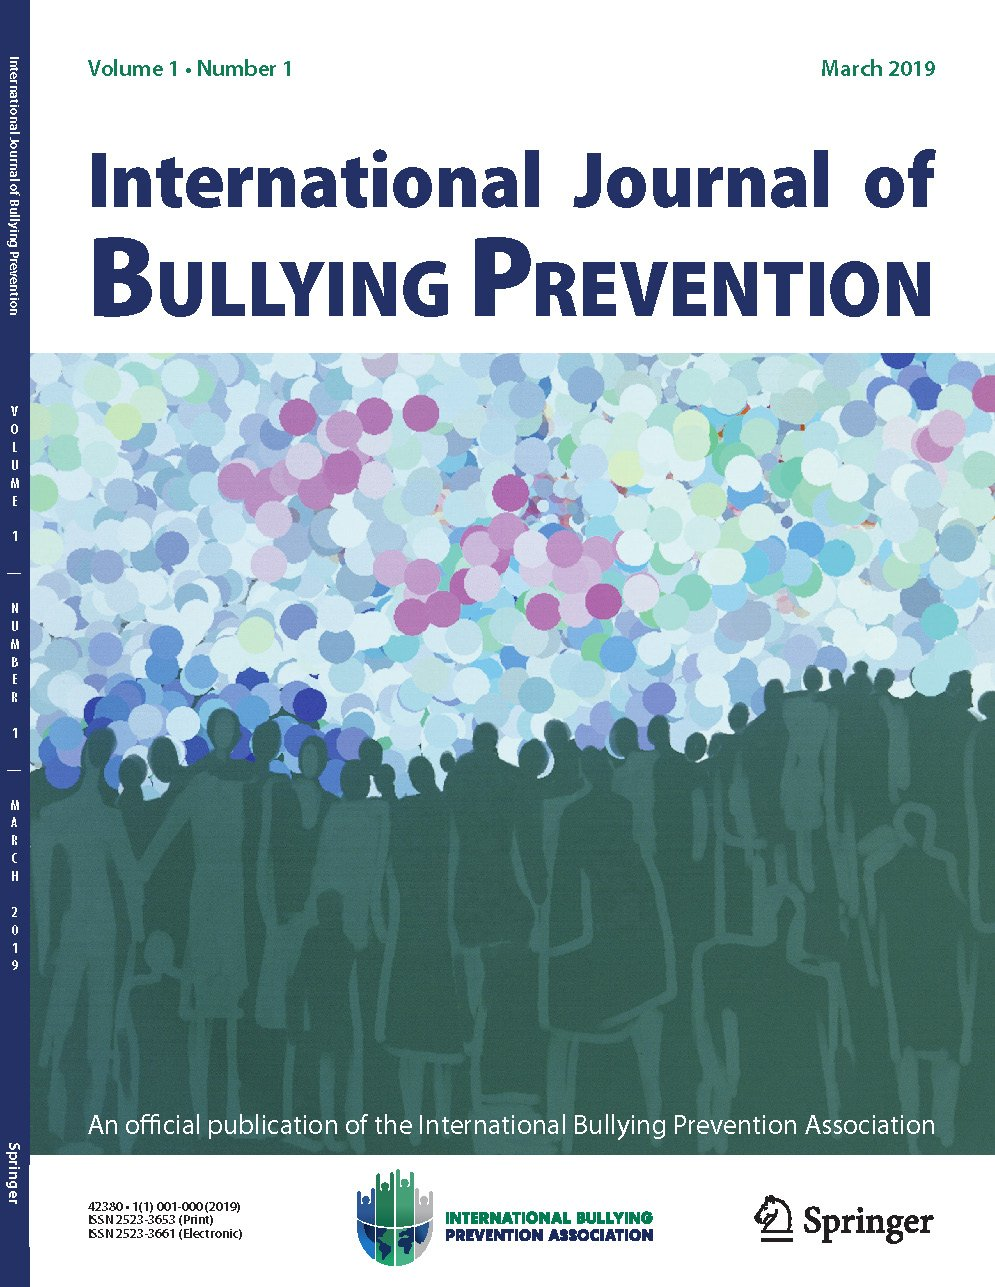 international-journal-bullying-prevention-cover